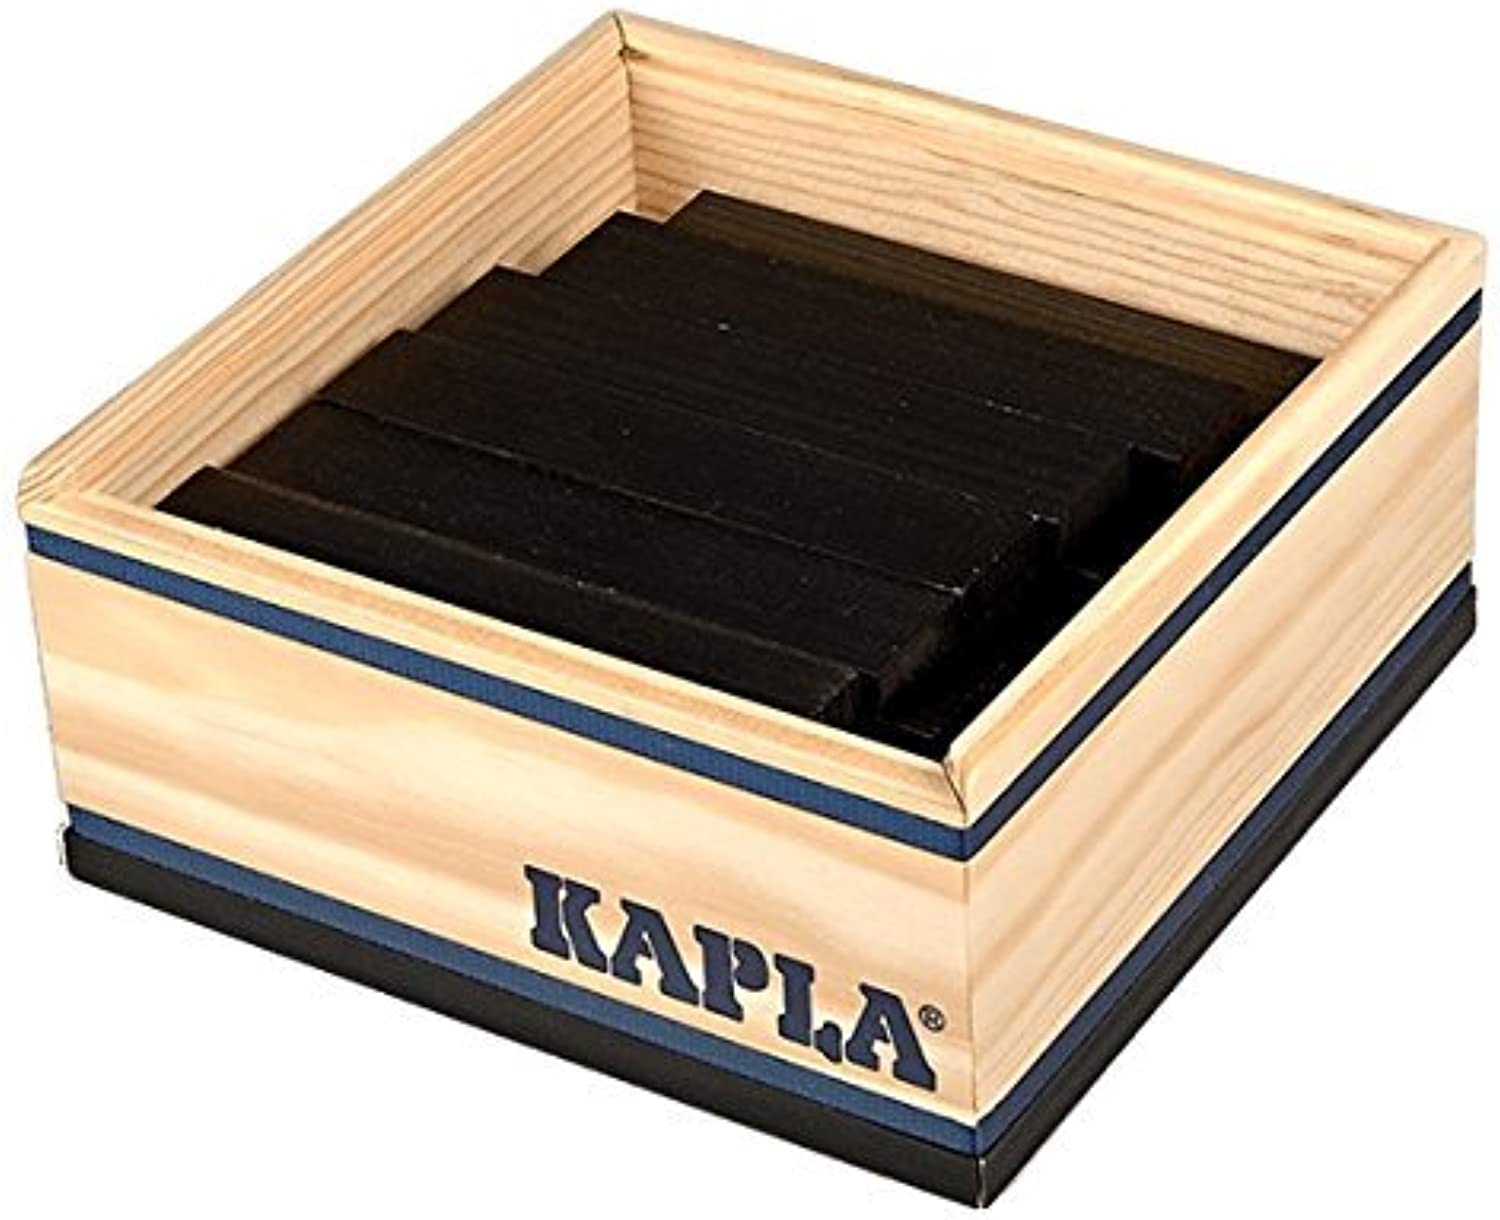 Kapla 40 Piece Wooden Block Set In schwarz by Kapla